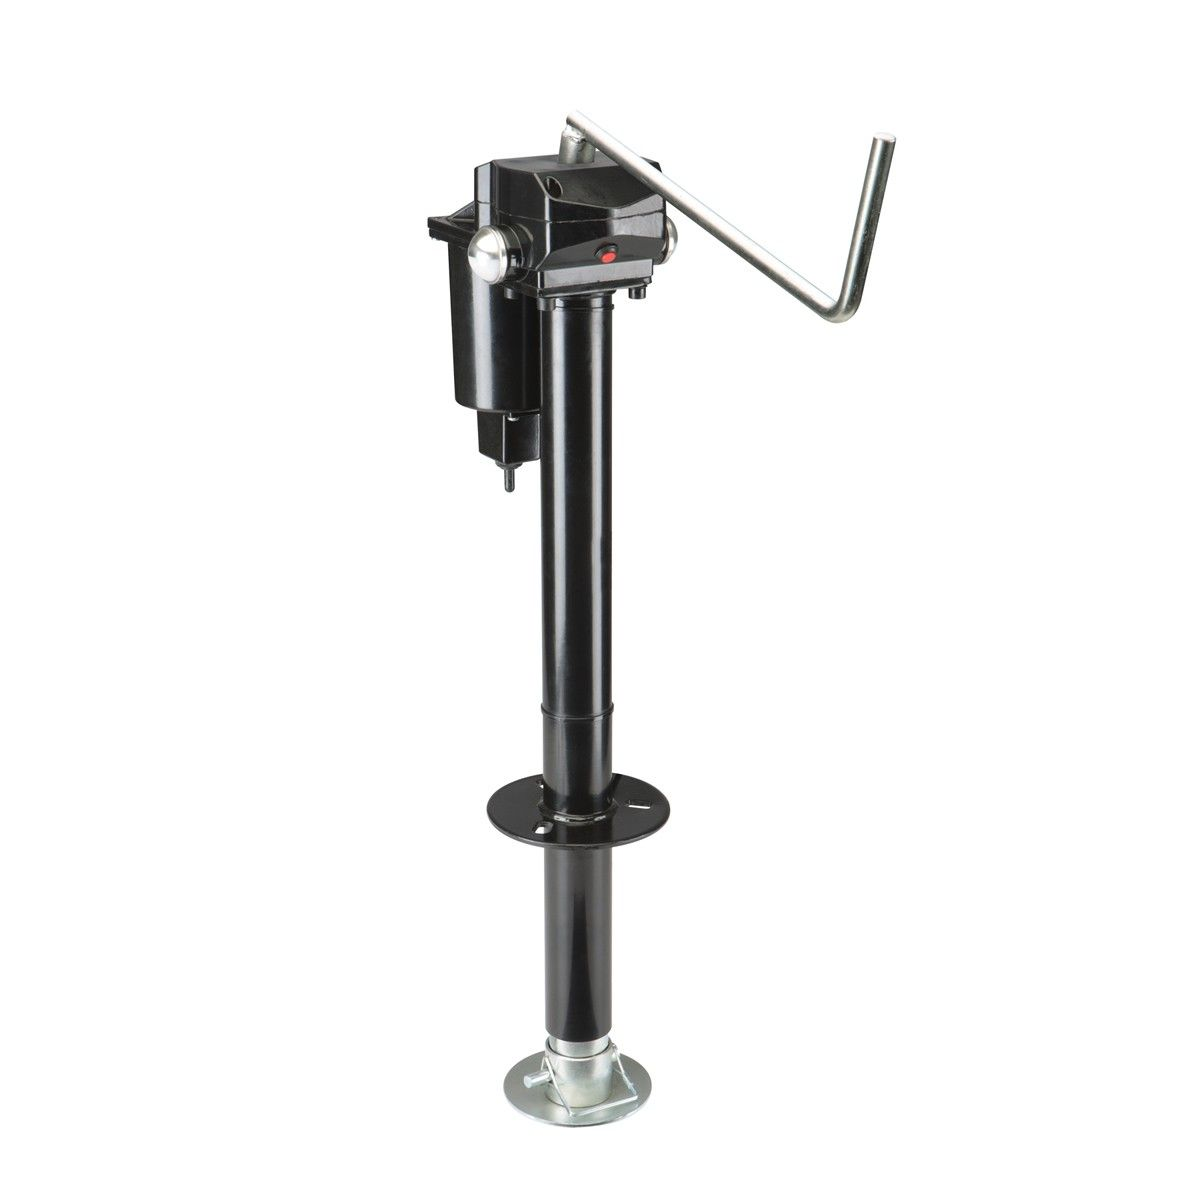 haul master 69899 3500 lb capacity electric trailer jack [ 1200 x 1200 Pixel ]